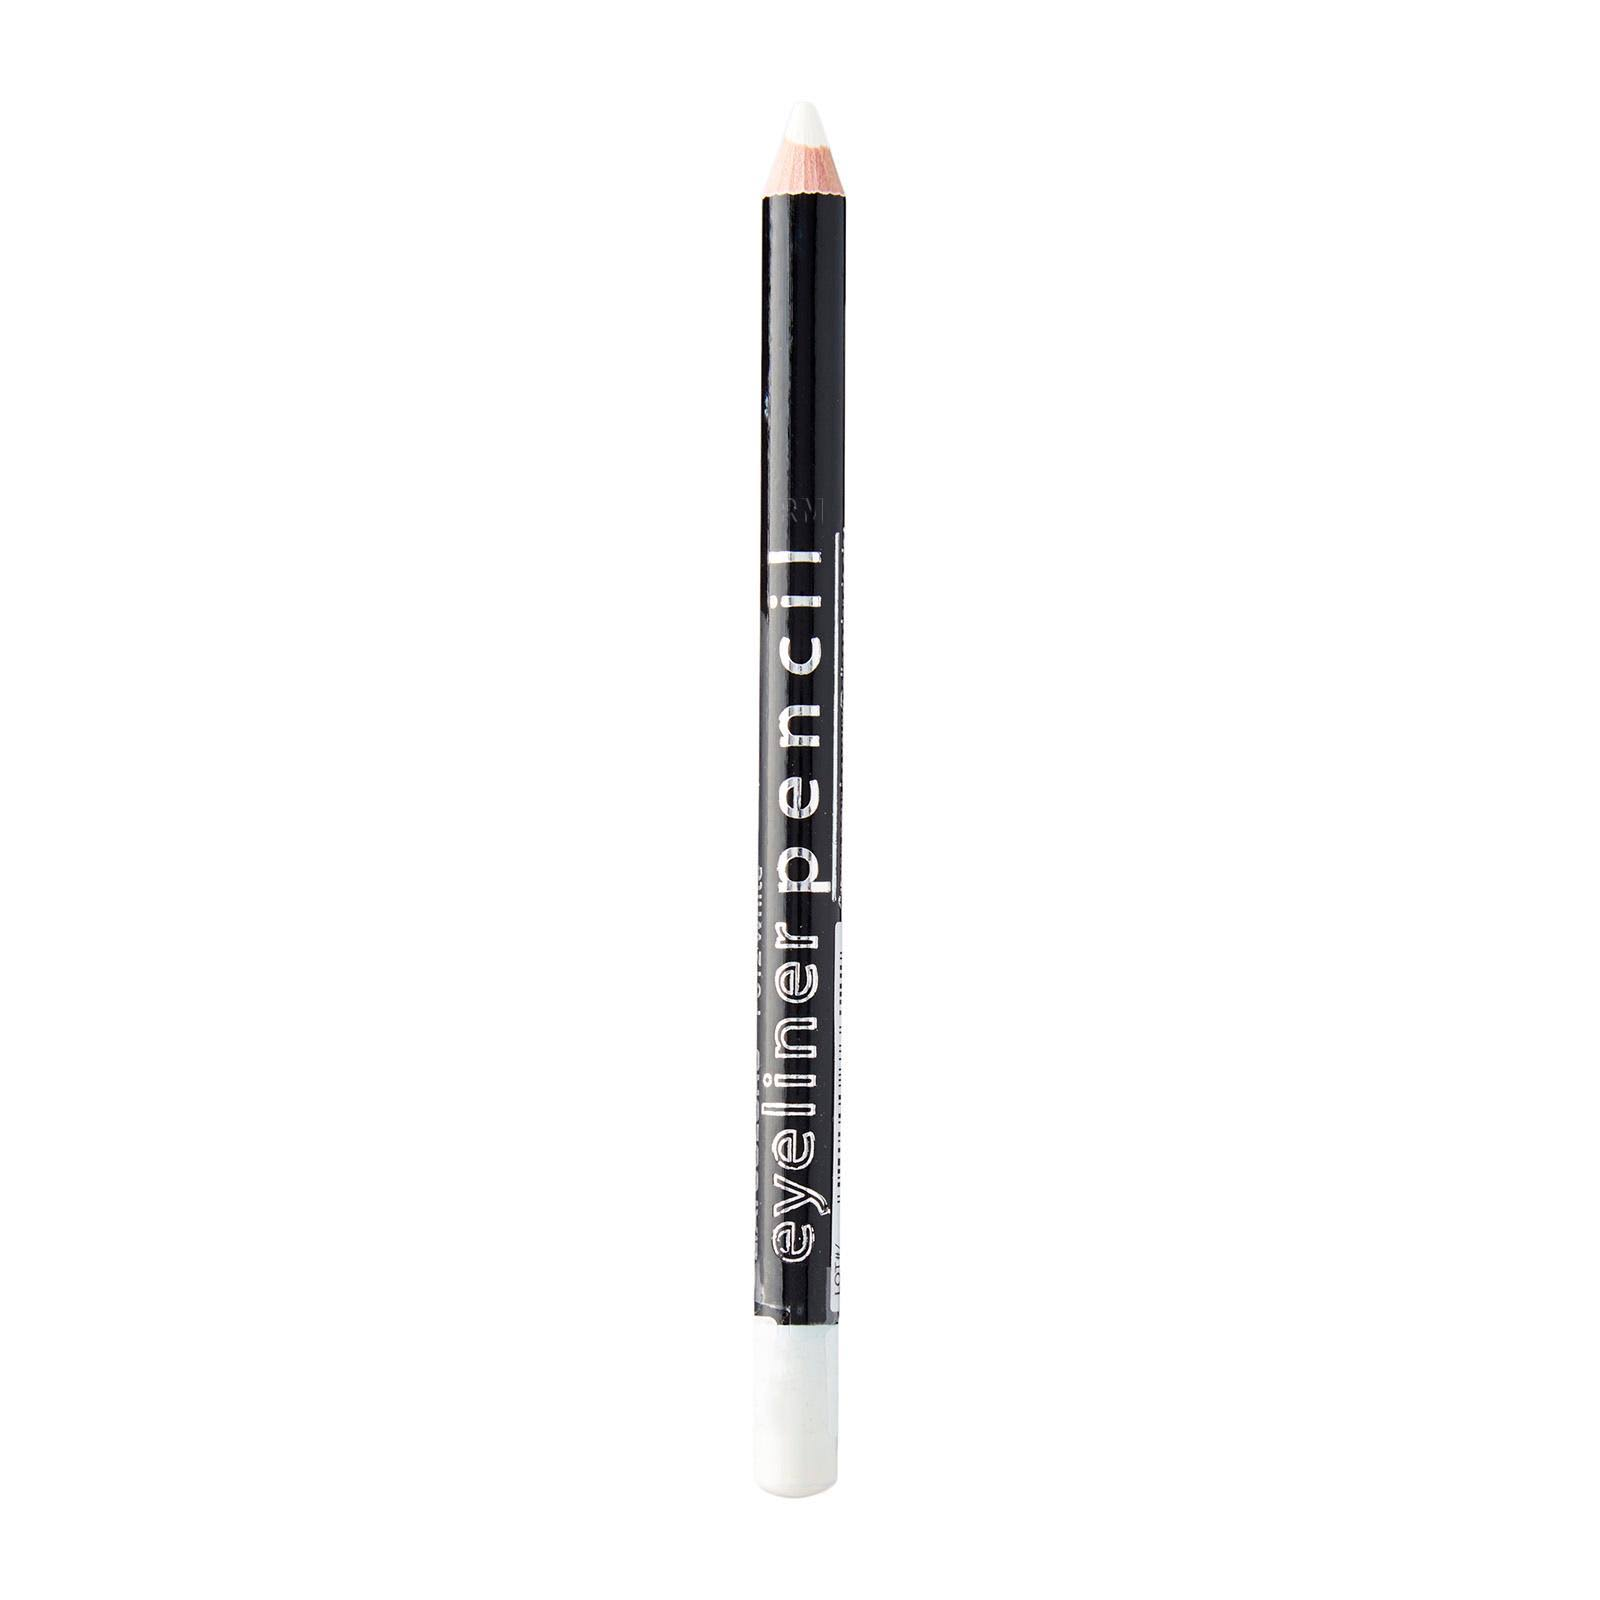 L.A. Colors P612 Eyeliner Pencil - White, 0.035oz